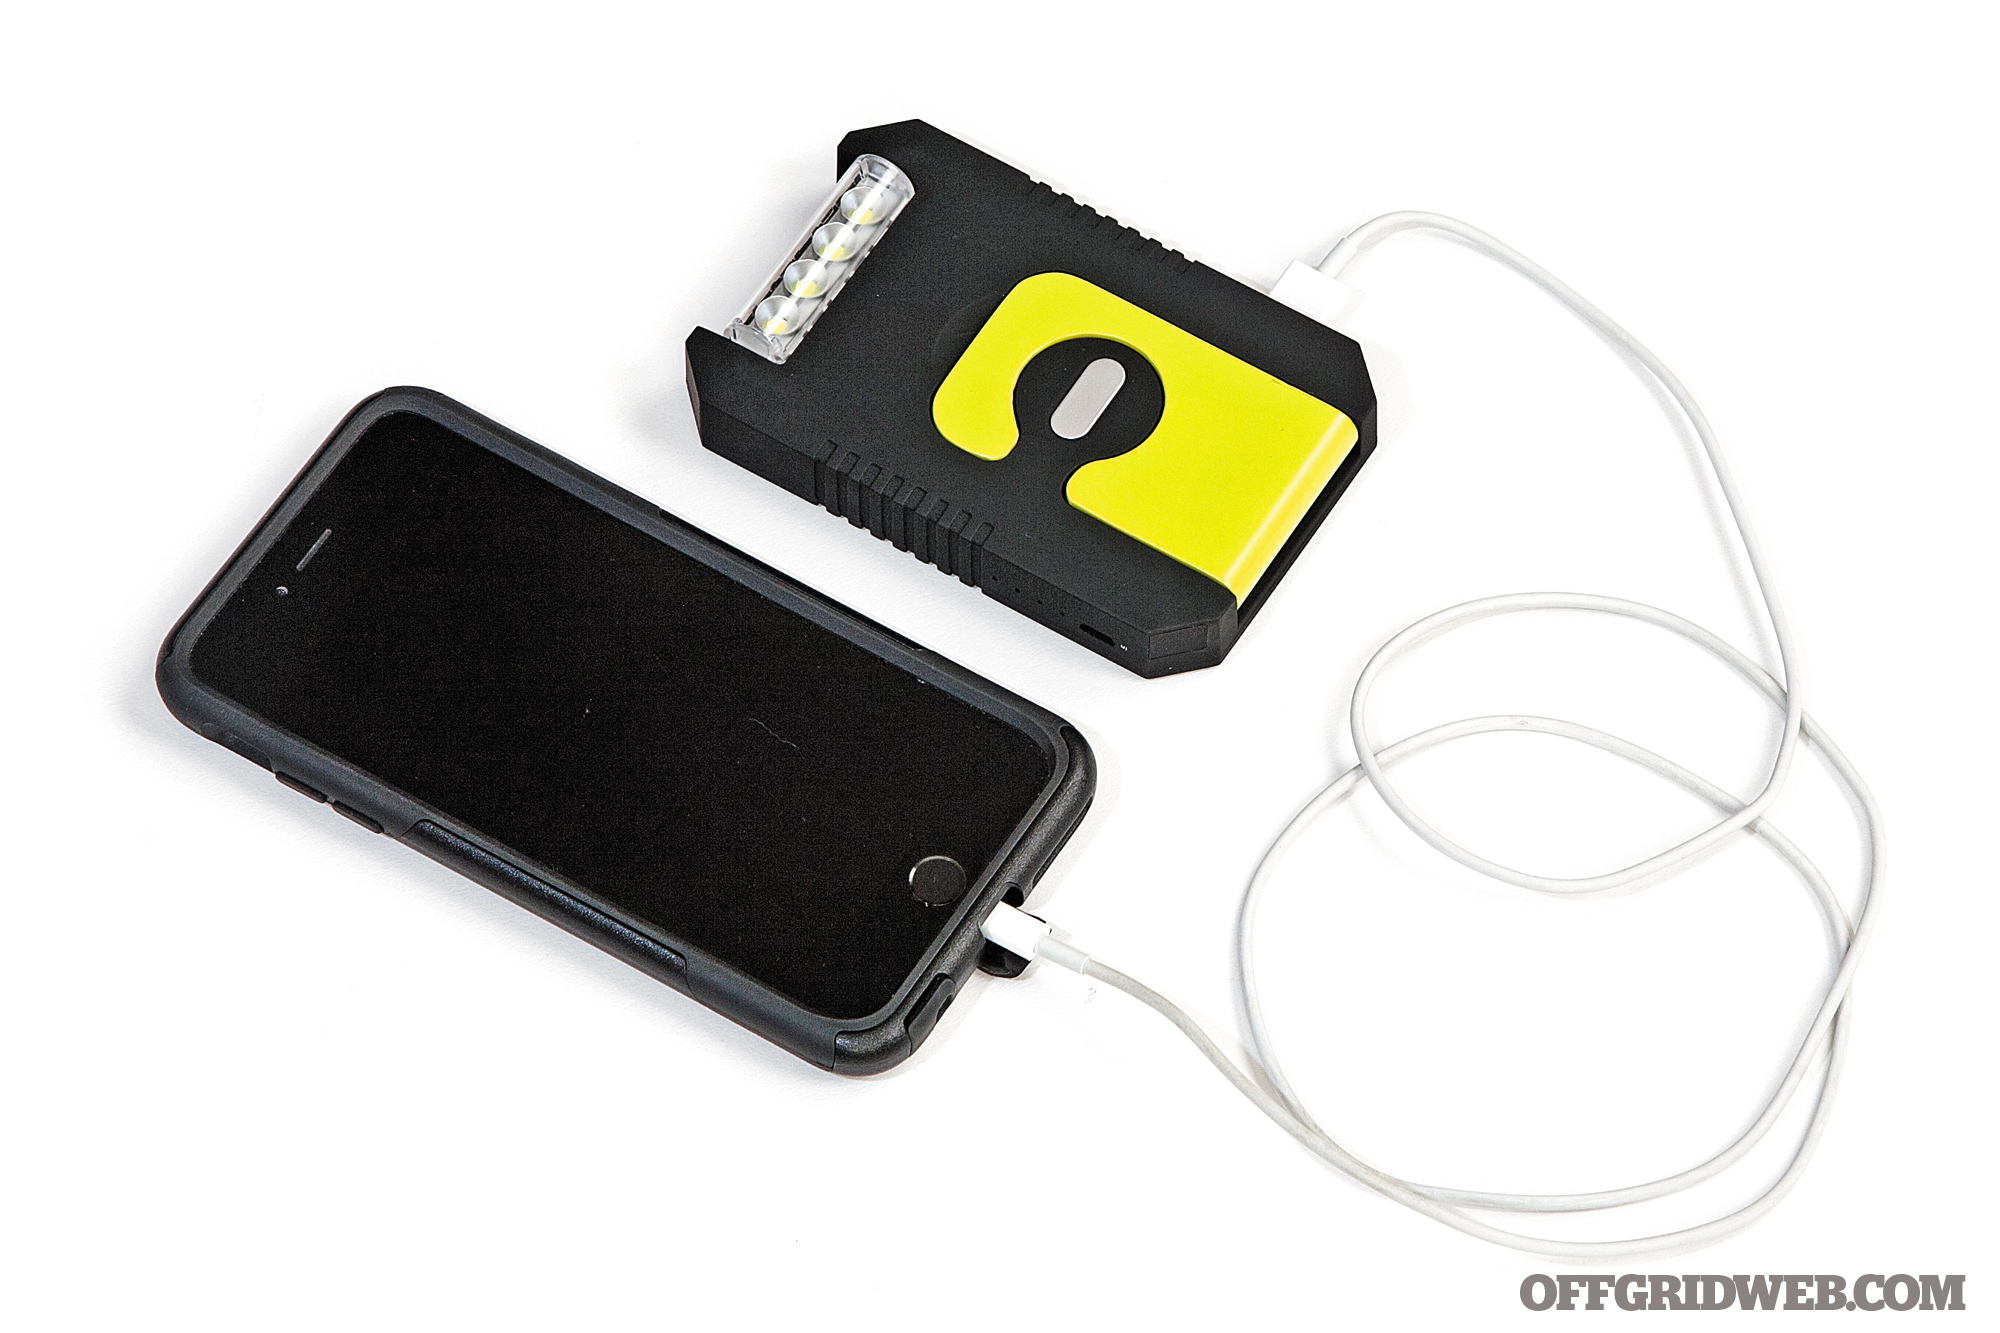 USB battery pack charger power bank electronics tech solar review buyers guide 26